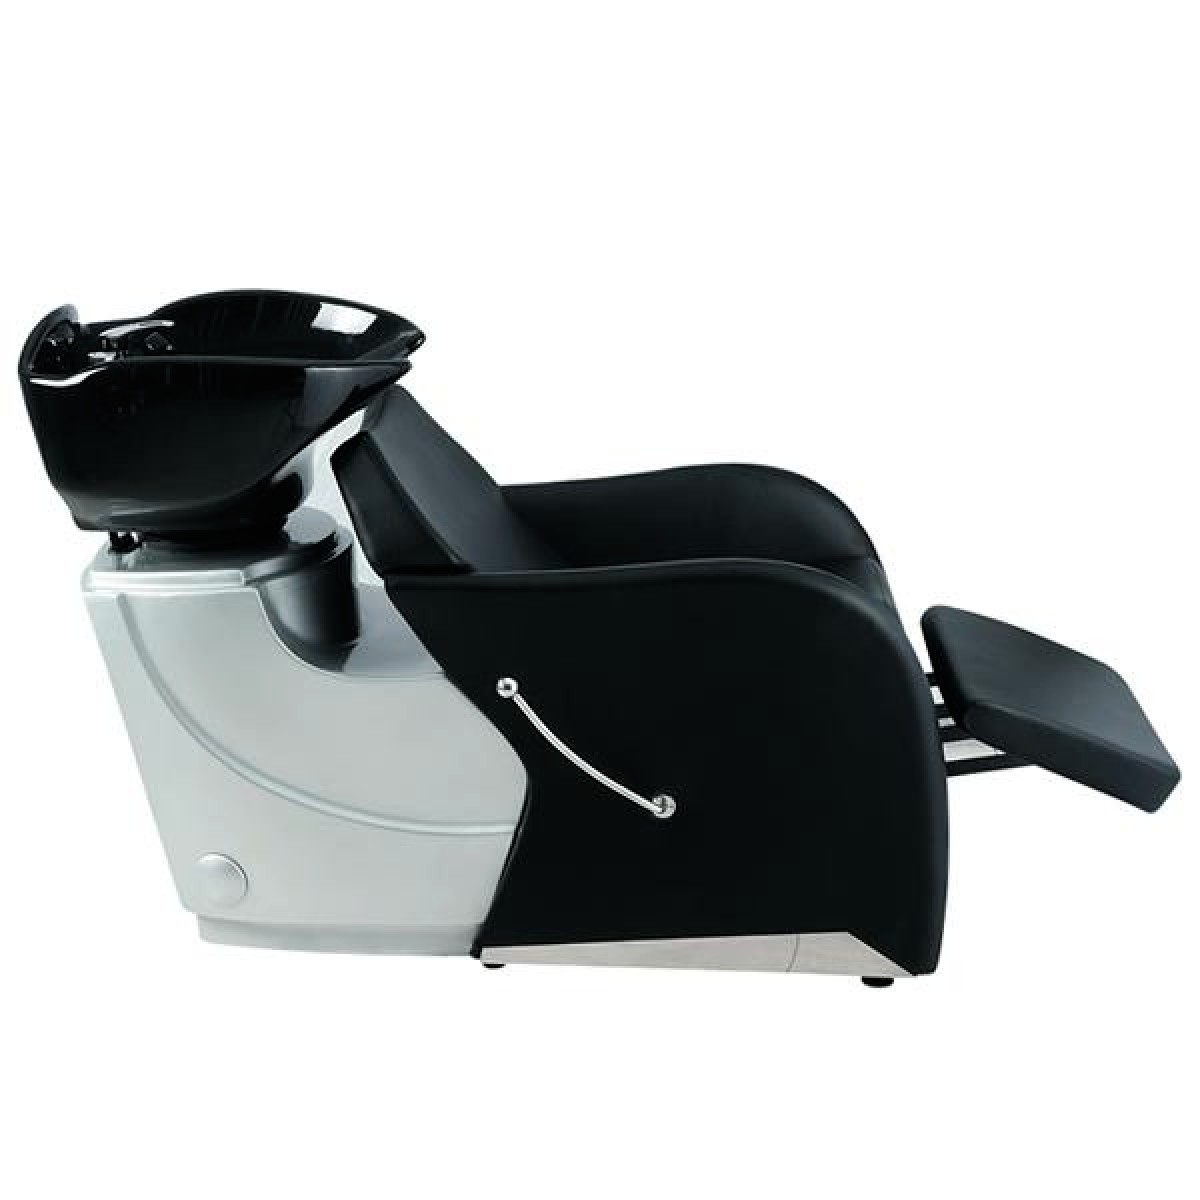 """ODESSA"" Backwash Shampoo Bowls, Backwash Shampoo Systems, Salon Shampoo Furniture Wholesale"